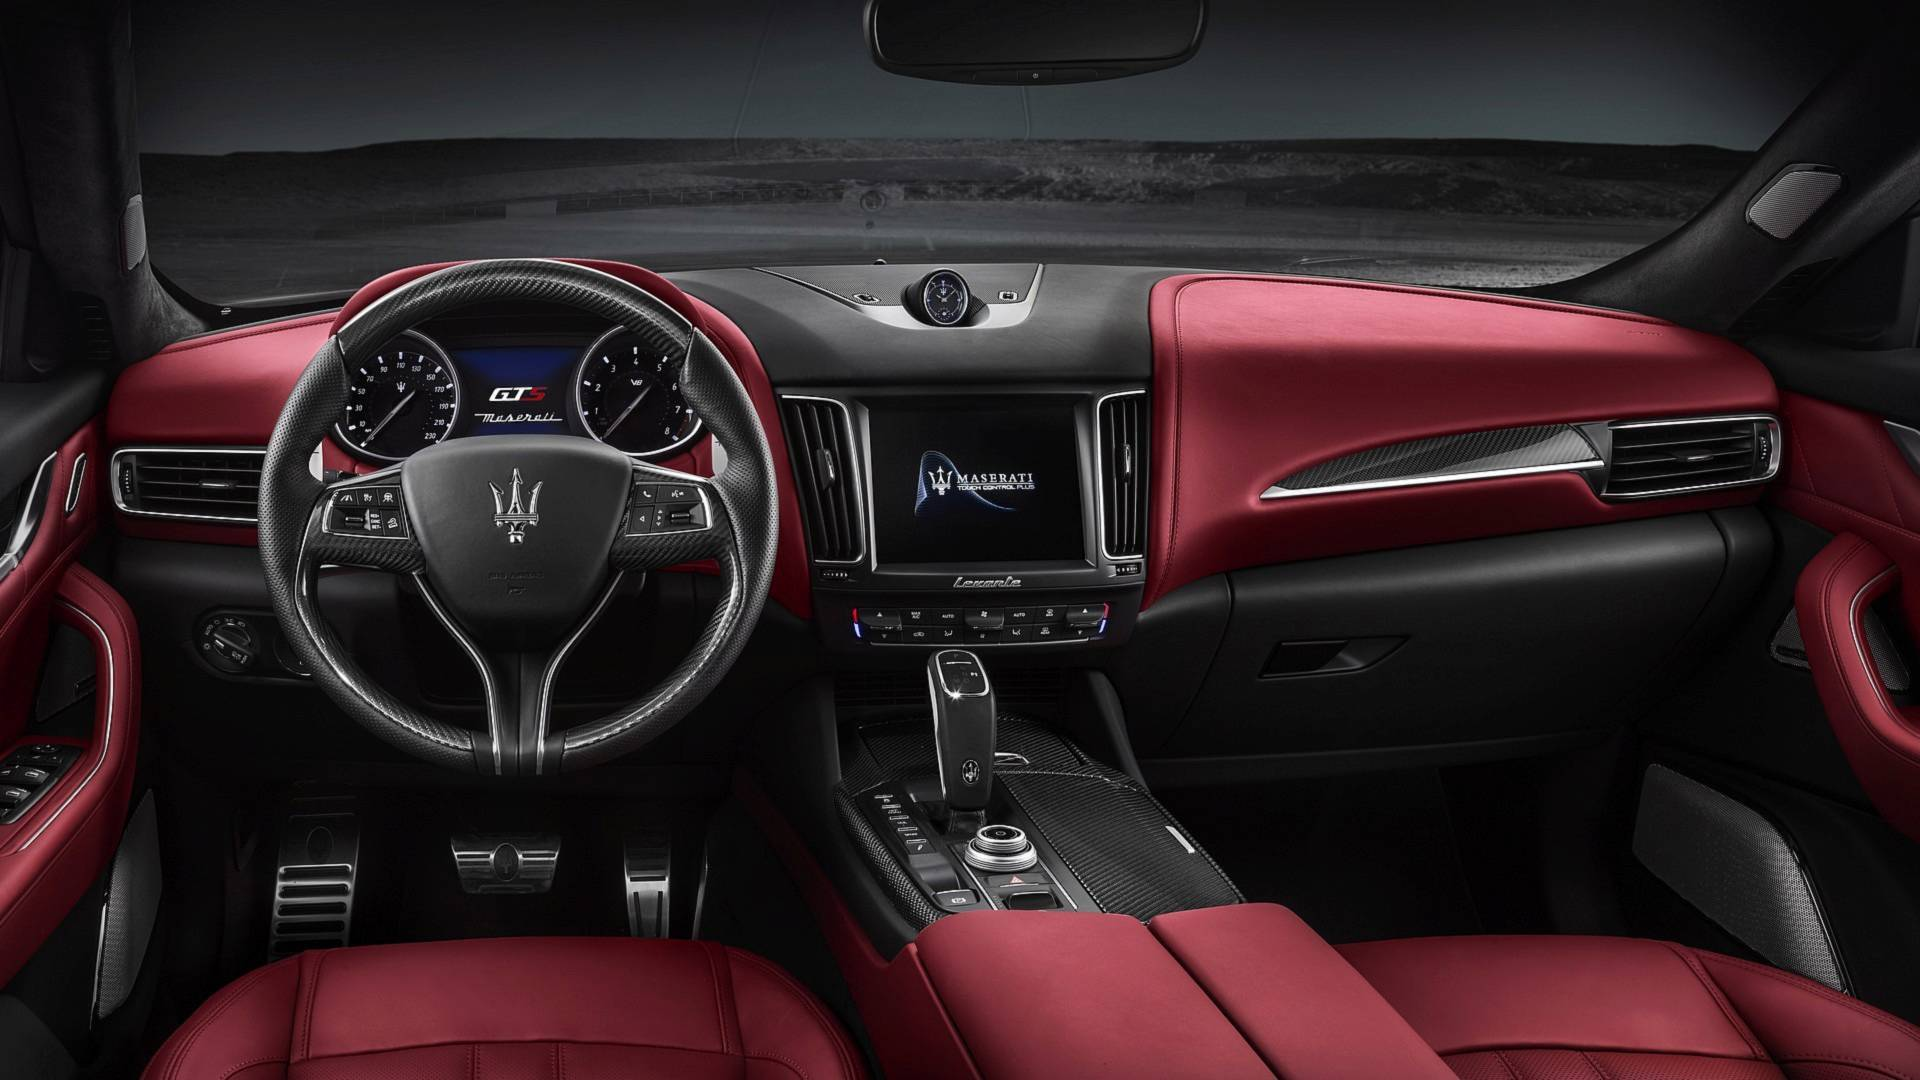 2019 Maserati Levante Gts Is No Trofeo Packs 550 Hp V8